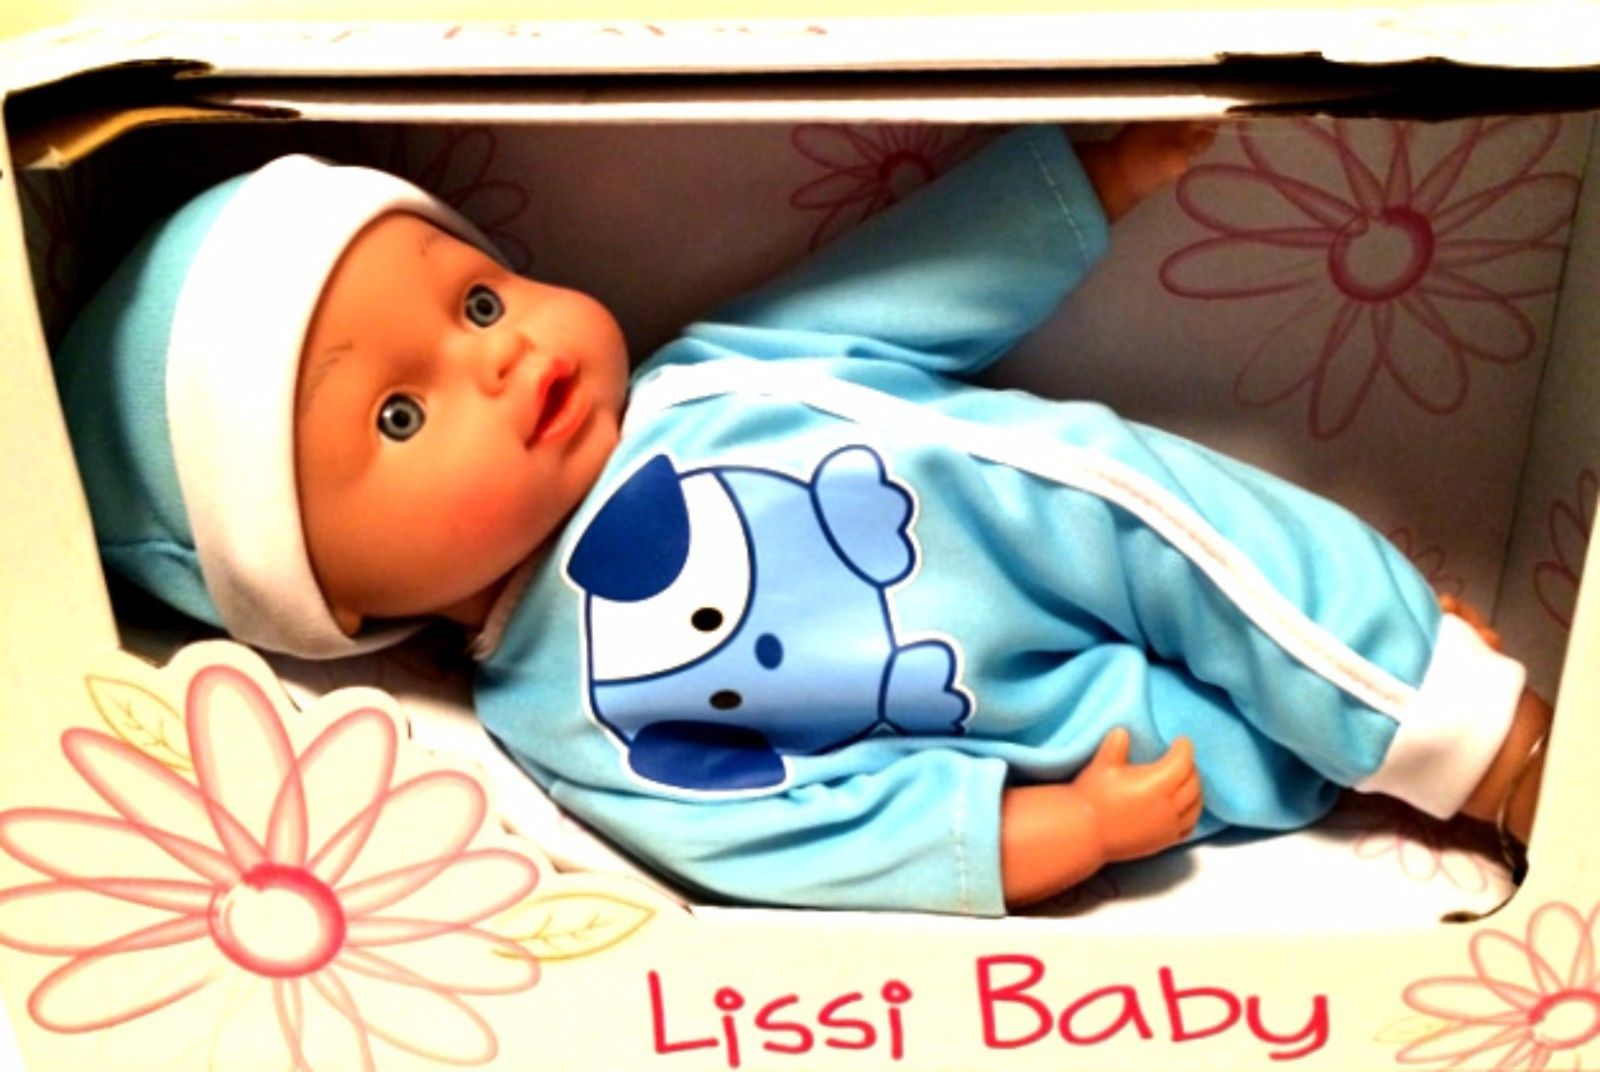 Lissi My First Baby Doll Boy Blue Outfit German 10 inches Age 2 and Up